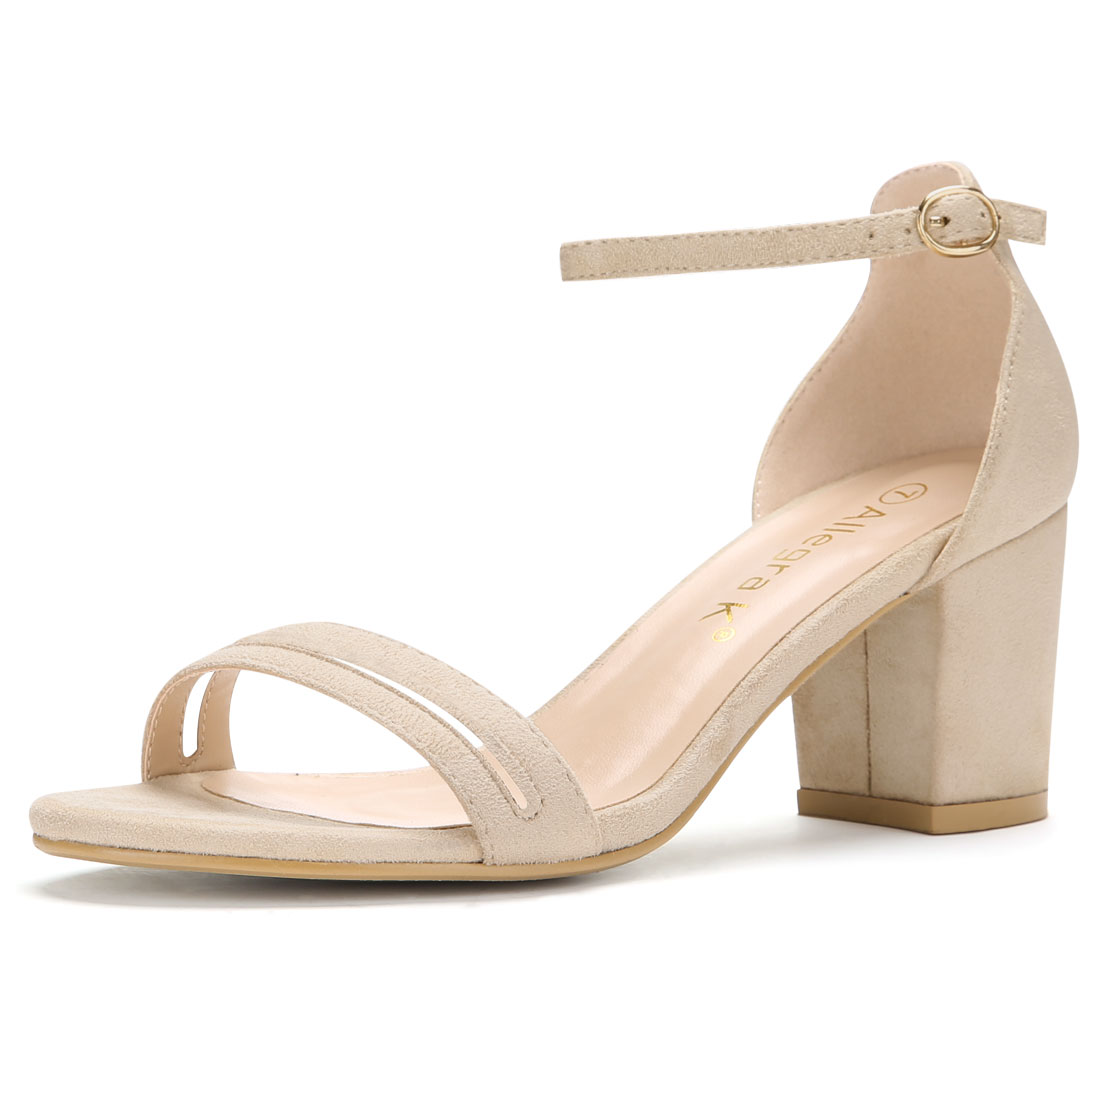 Women Open Toe Mid Chunky Heel Ankle Strap Sandals Beige US 5